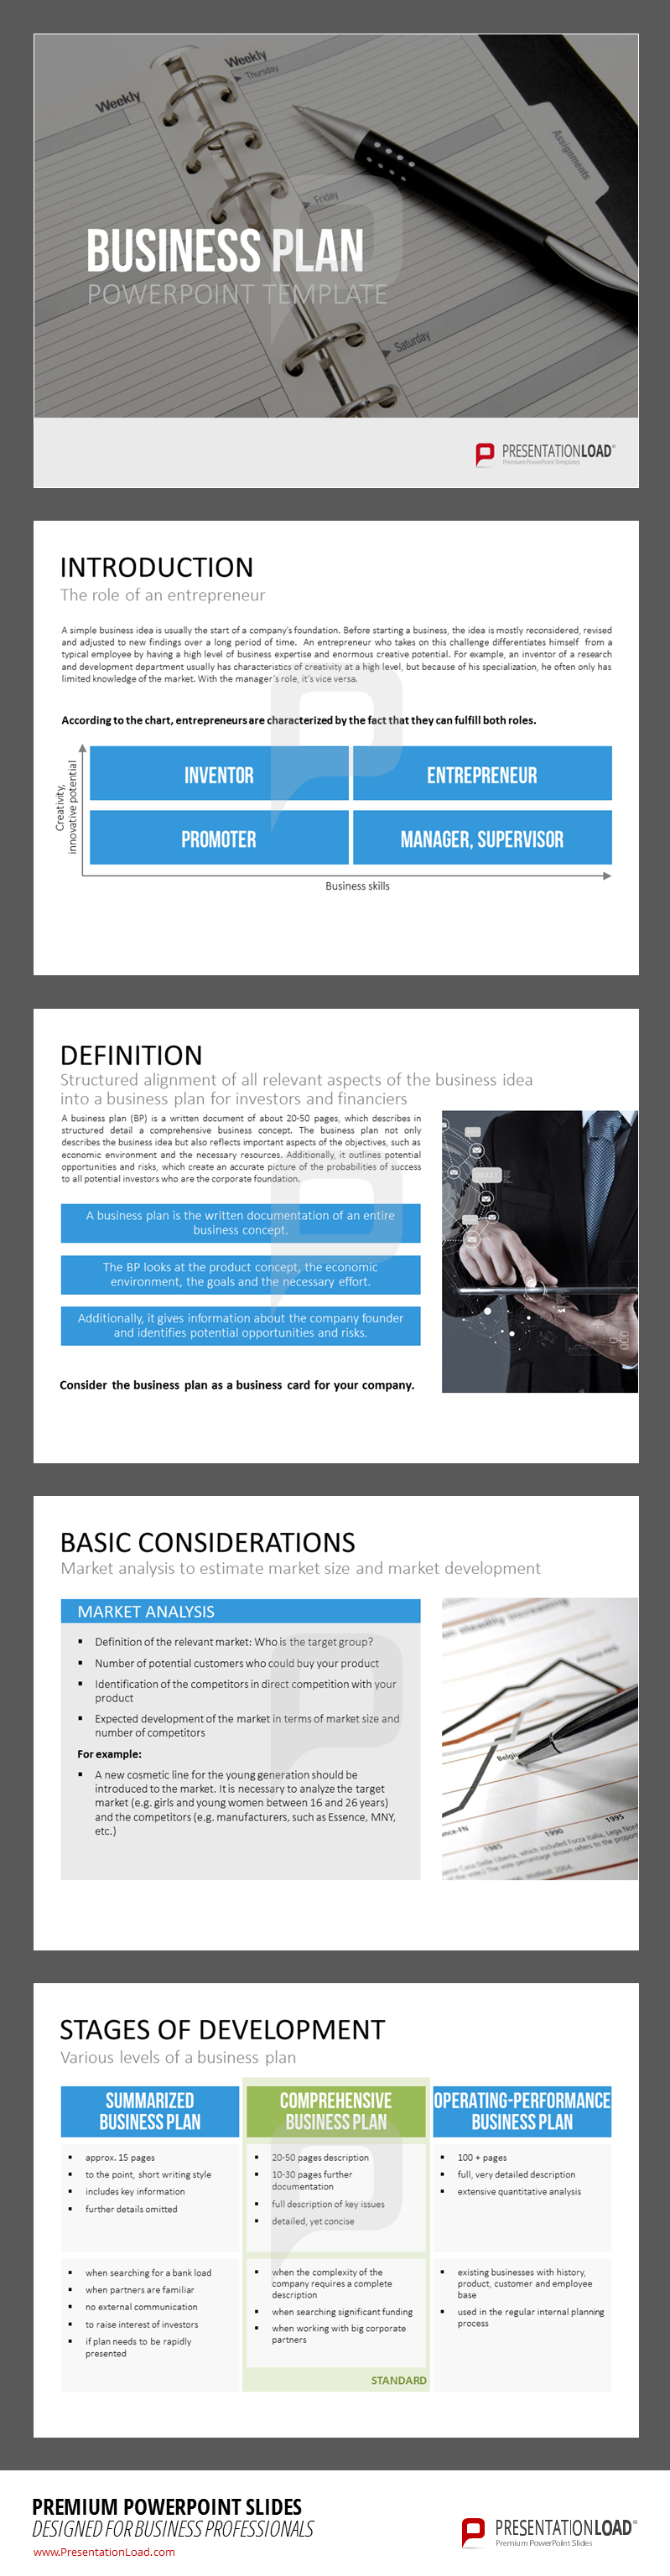 Benefit from our business plan powerpoint templates a simple benefit from our business plan powerpoint templates a simple business idea is usually the start toneelgroepblik Image collections